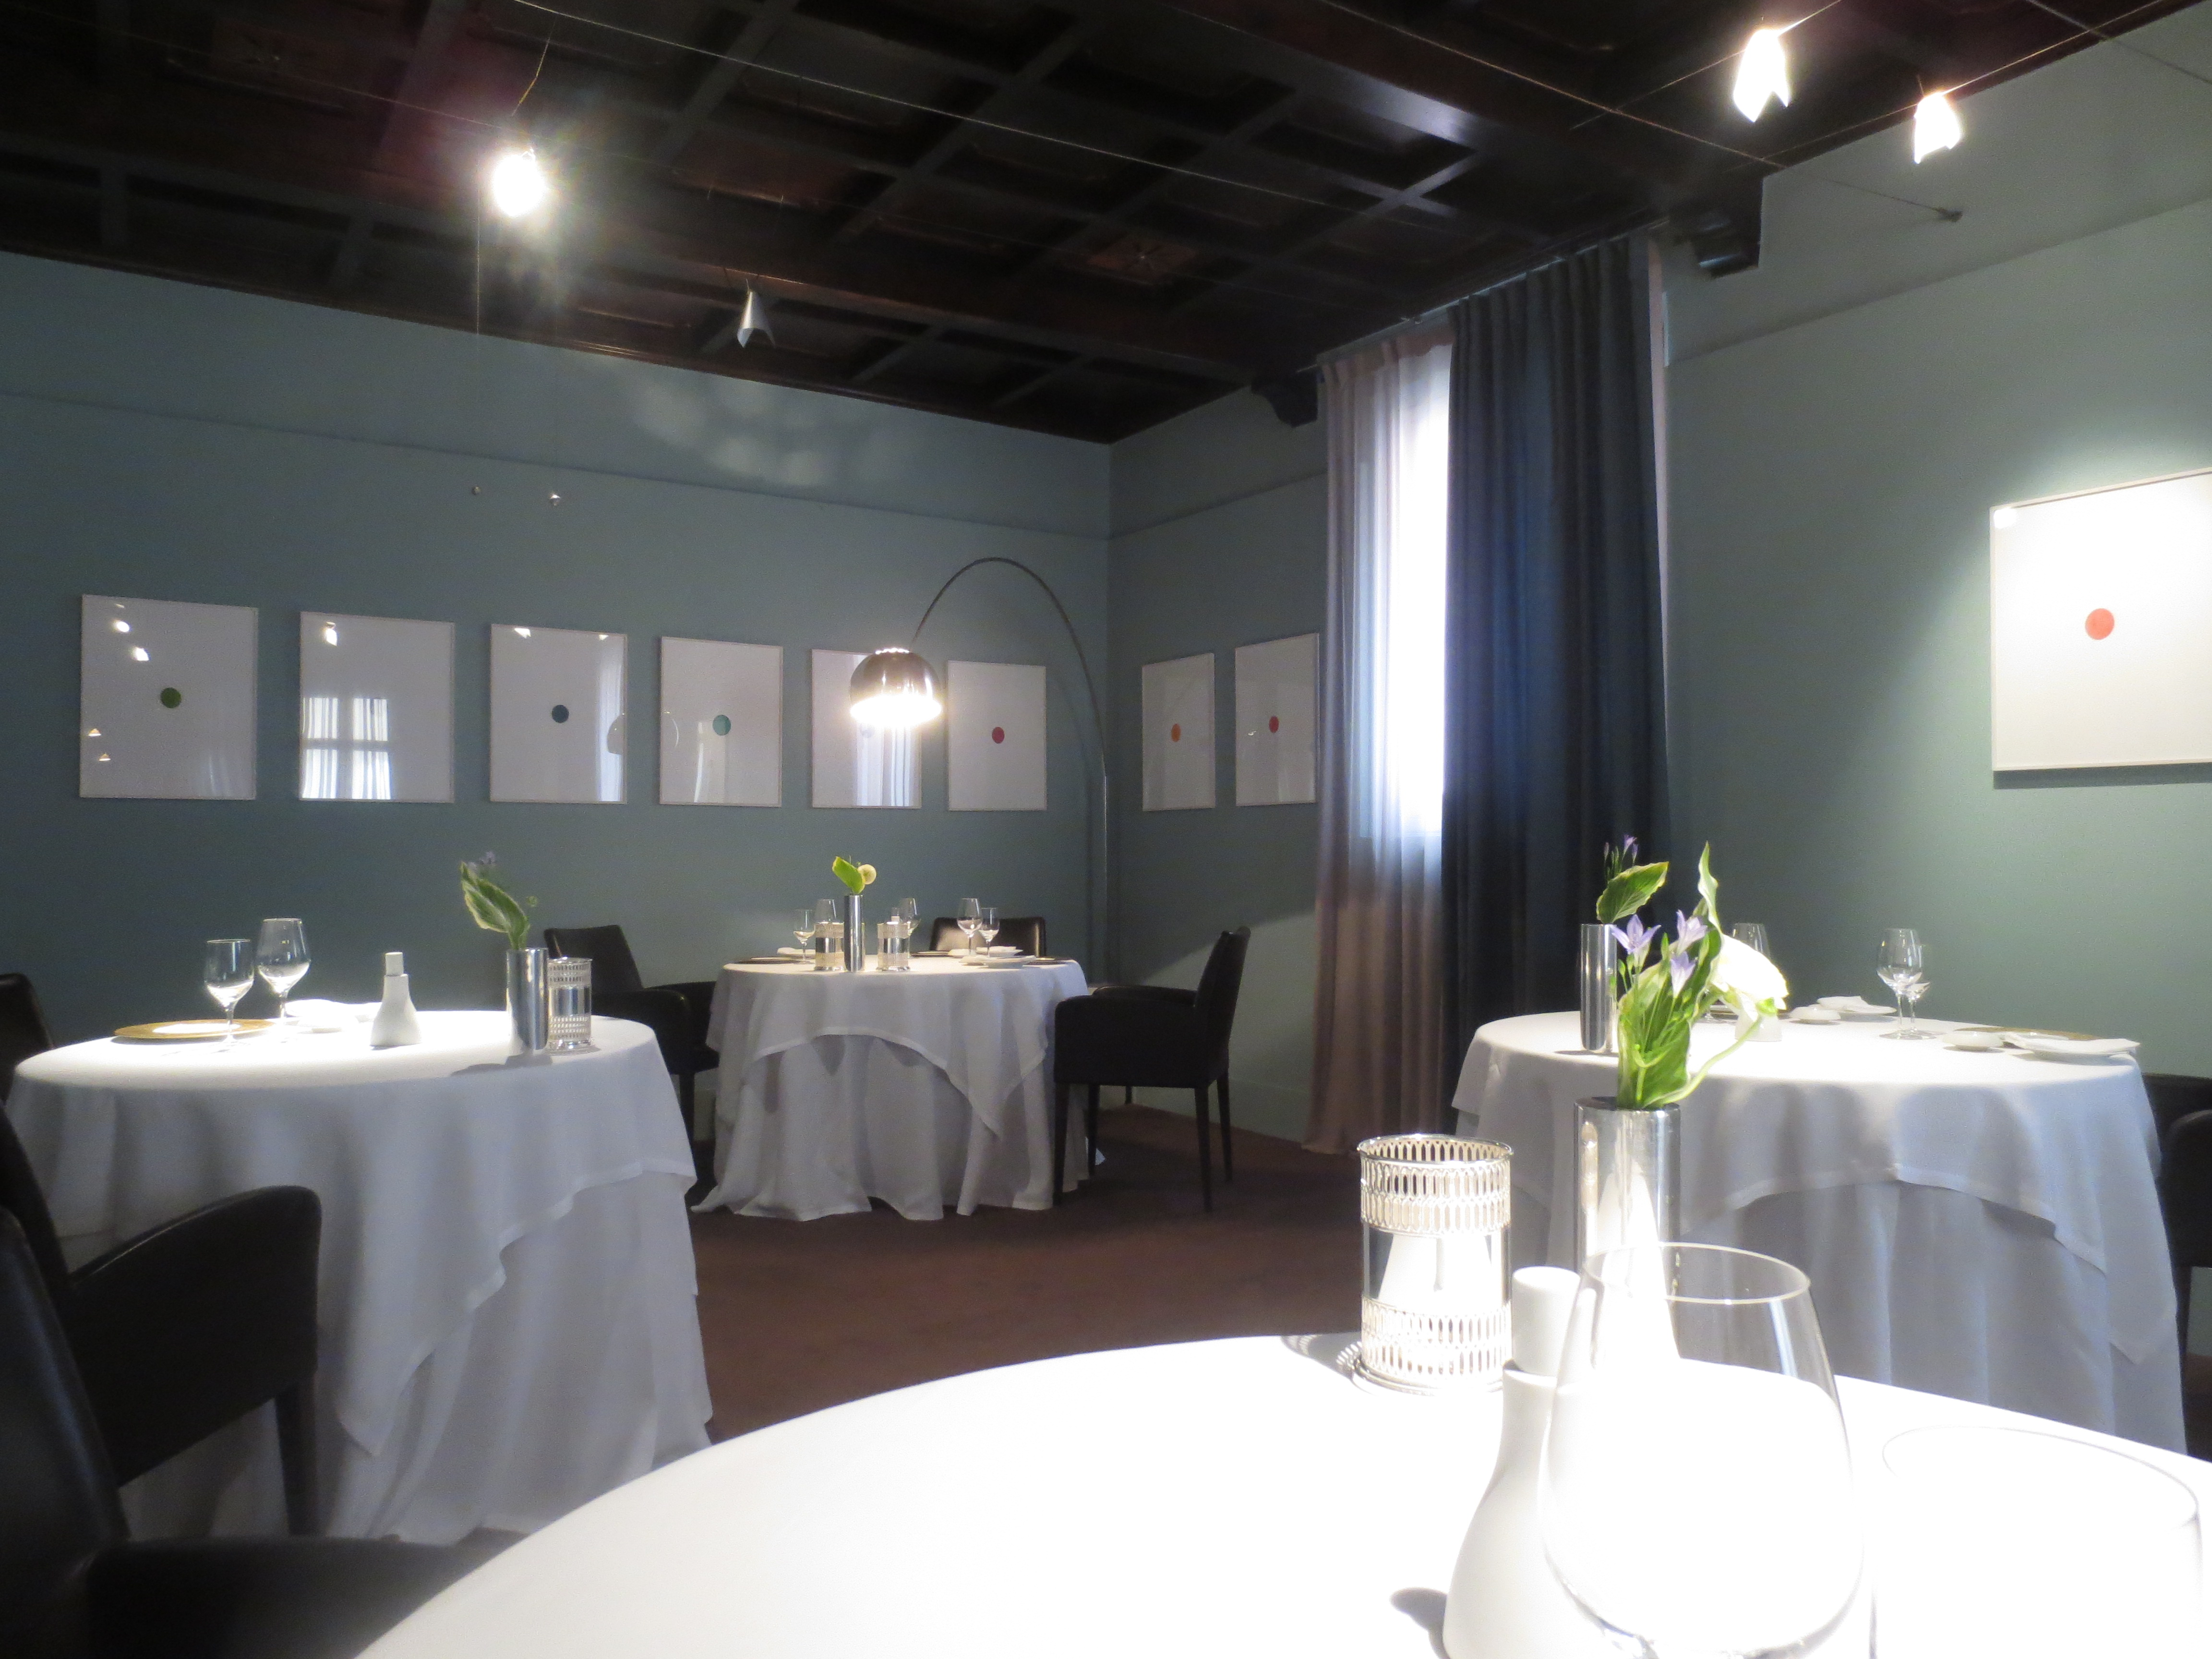 Lunch at osteria francescana modena italy travel gourmet for Kitchen set modena